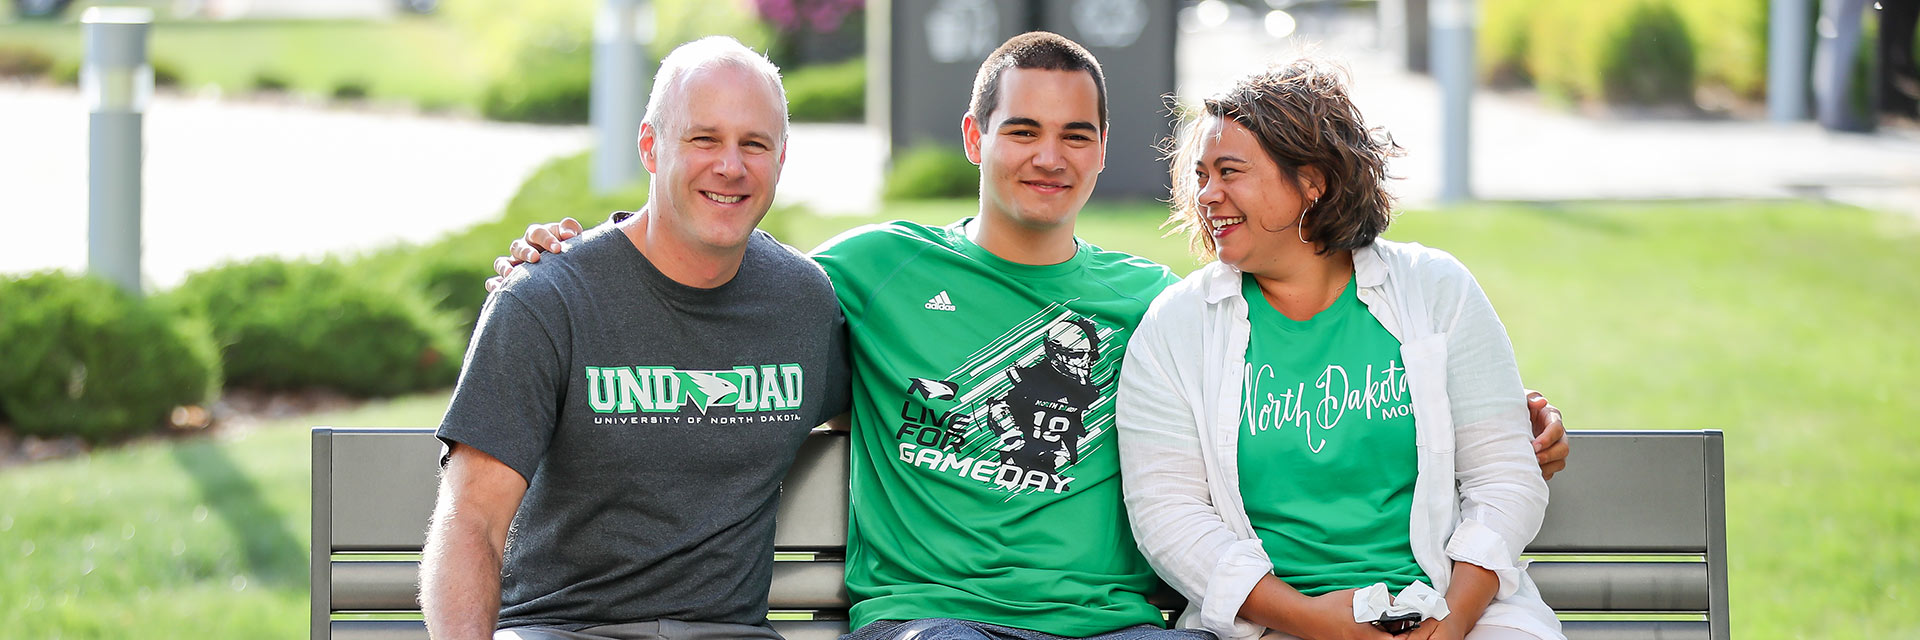 Family at UND